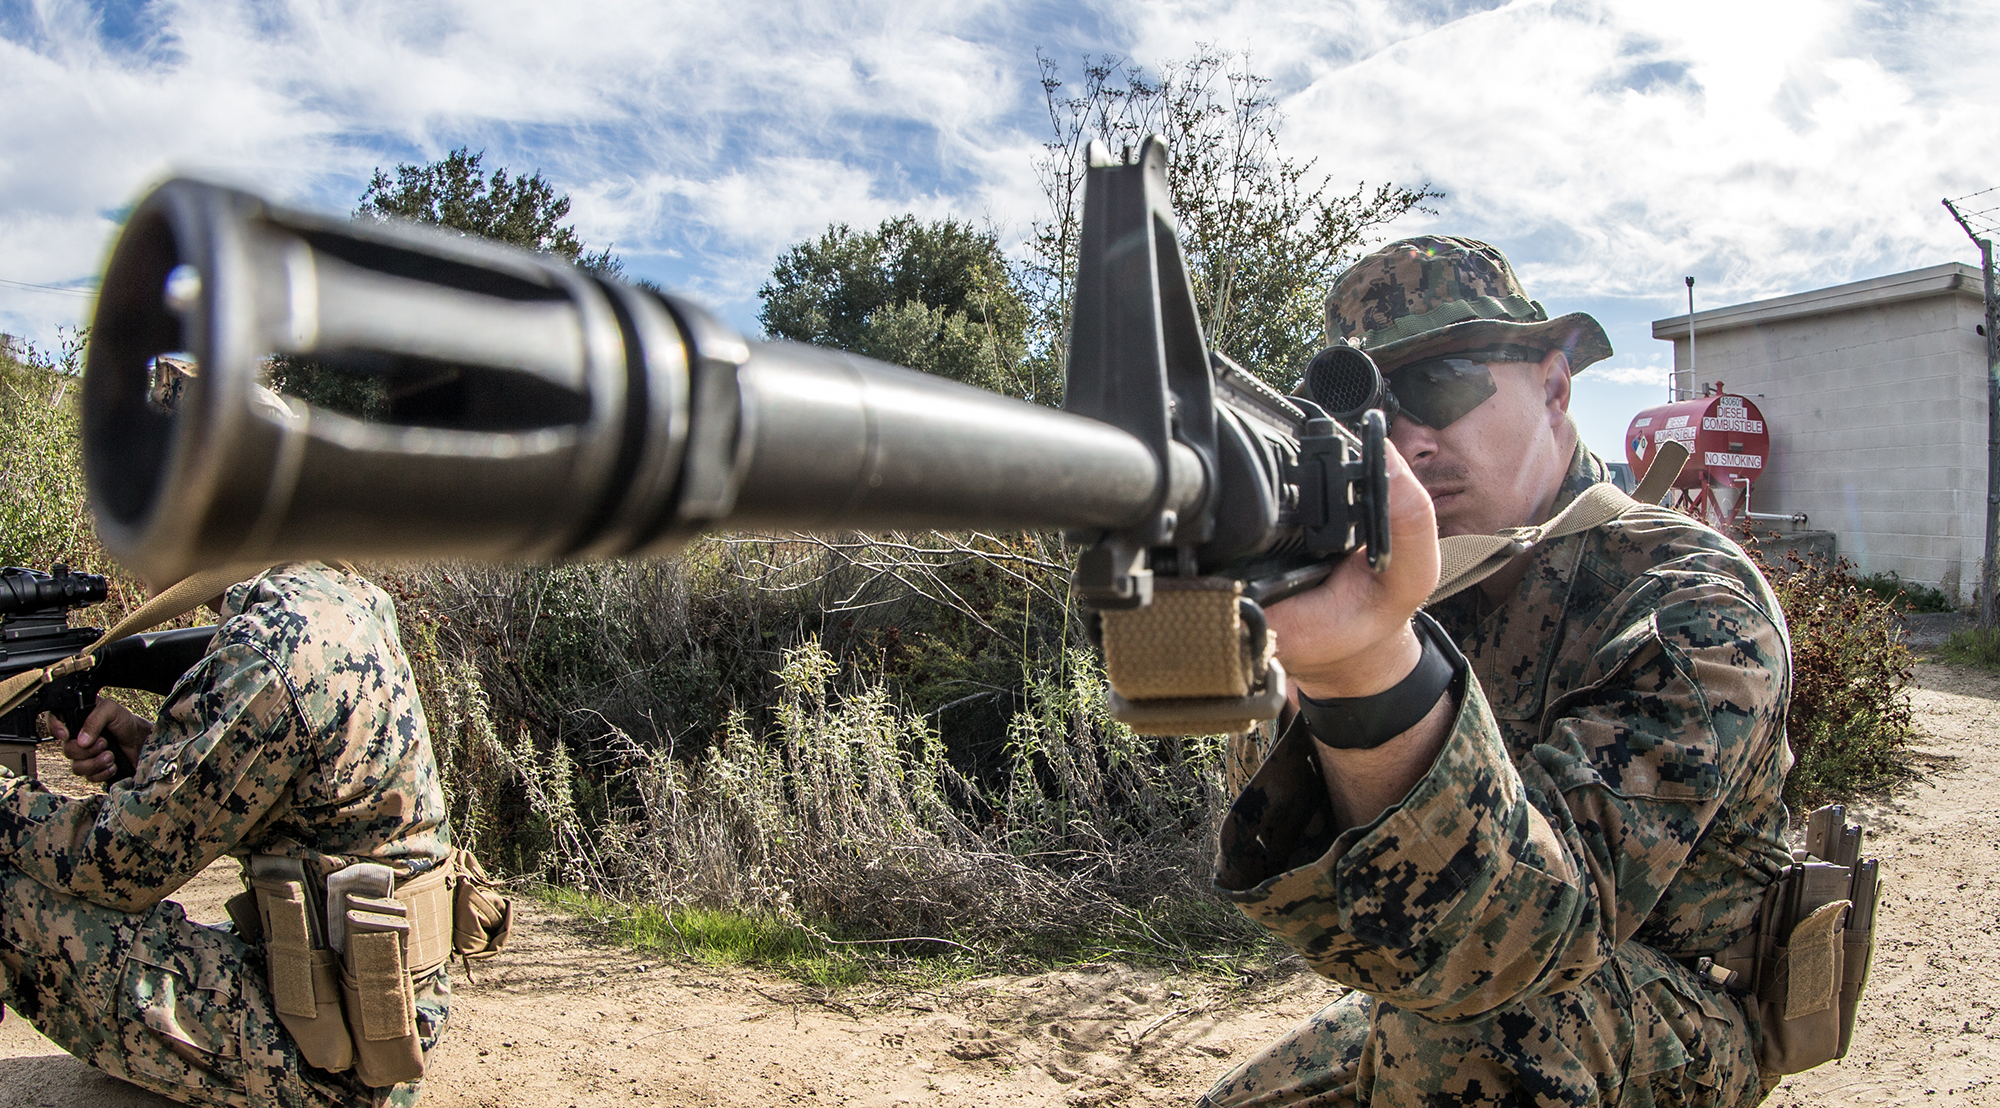 Lance Cpl. Mitchell Smith sights in on a barrel at the 1st Maintenance Battalion Marksmanship Trainer Unit on Marine Corps Base Camp Pendleton, Calif., Jan. 7, 2020. (Lance Cpl. Alison Dostie/Marine Corps)